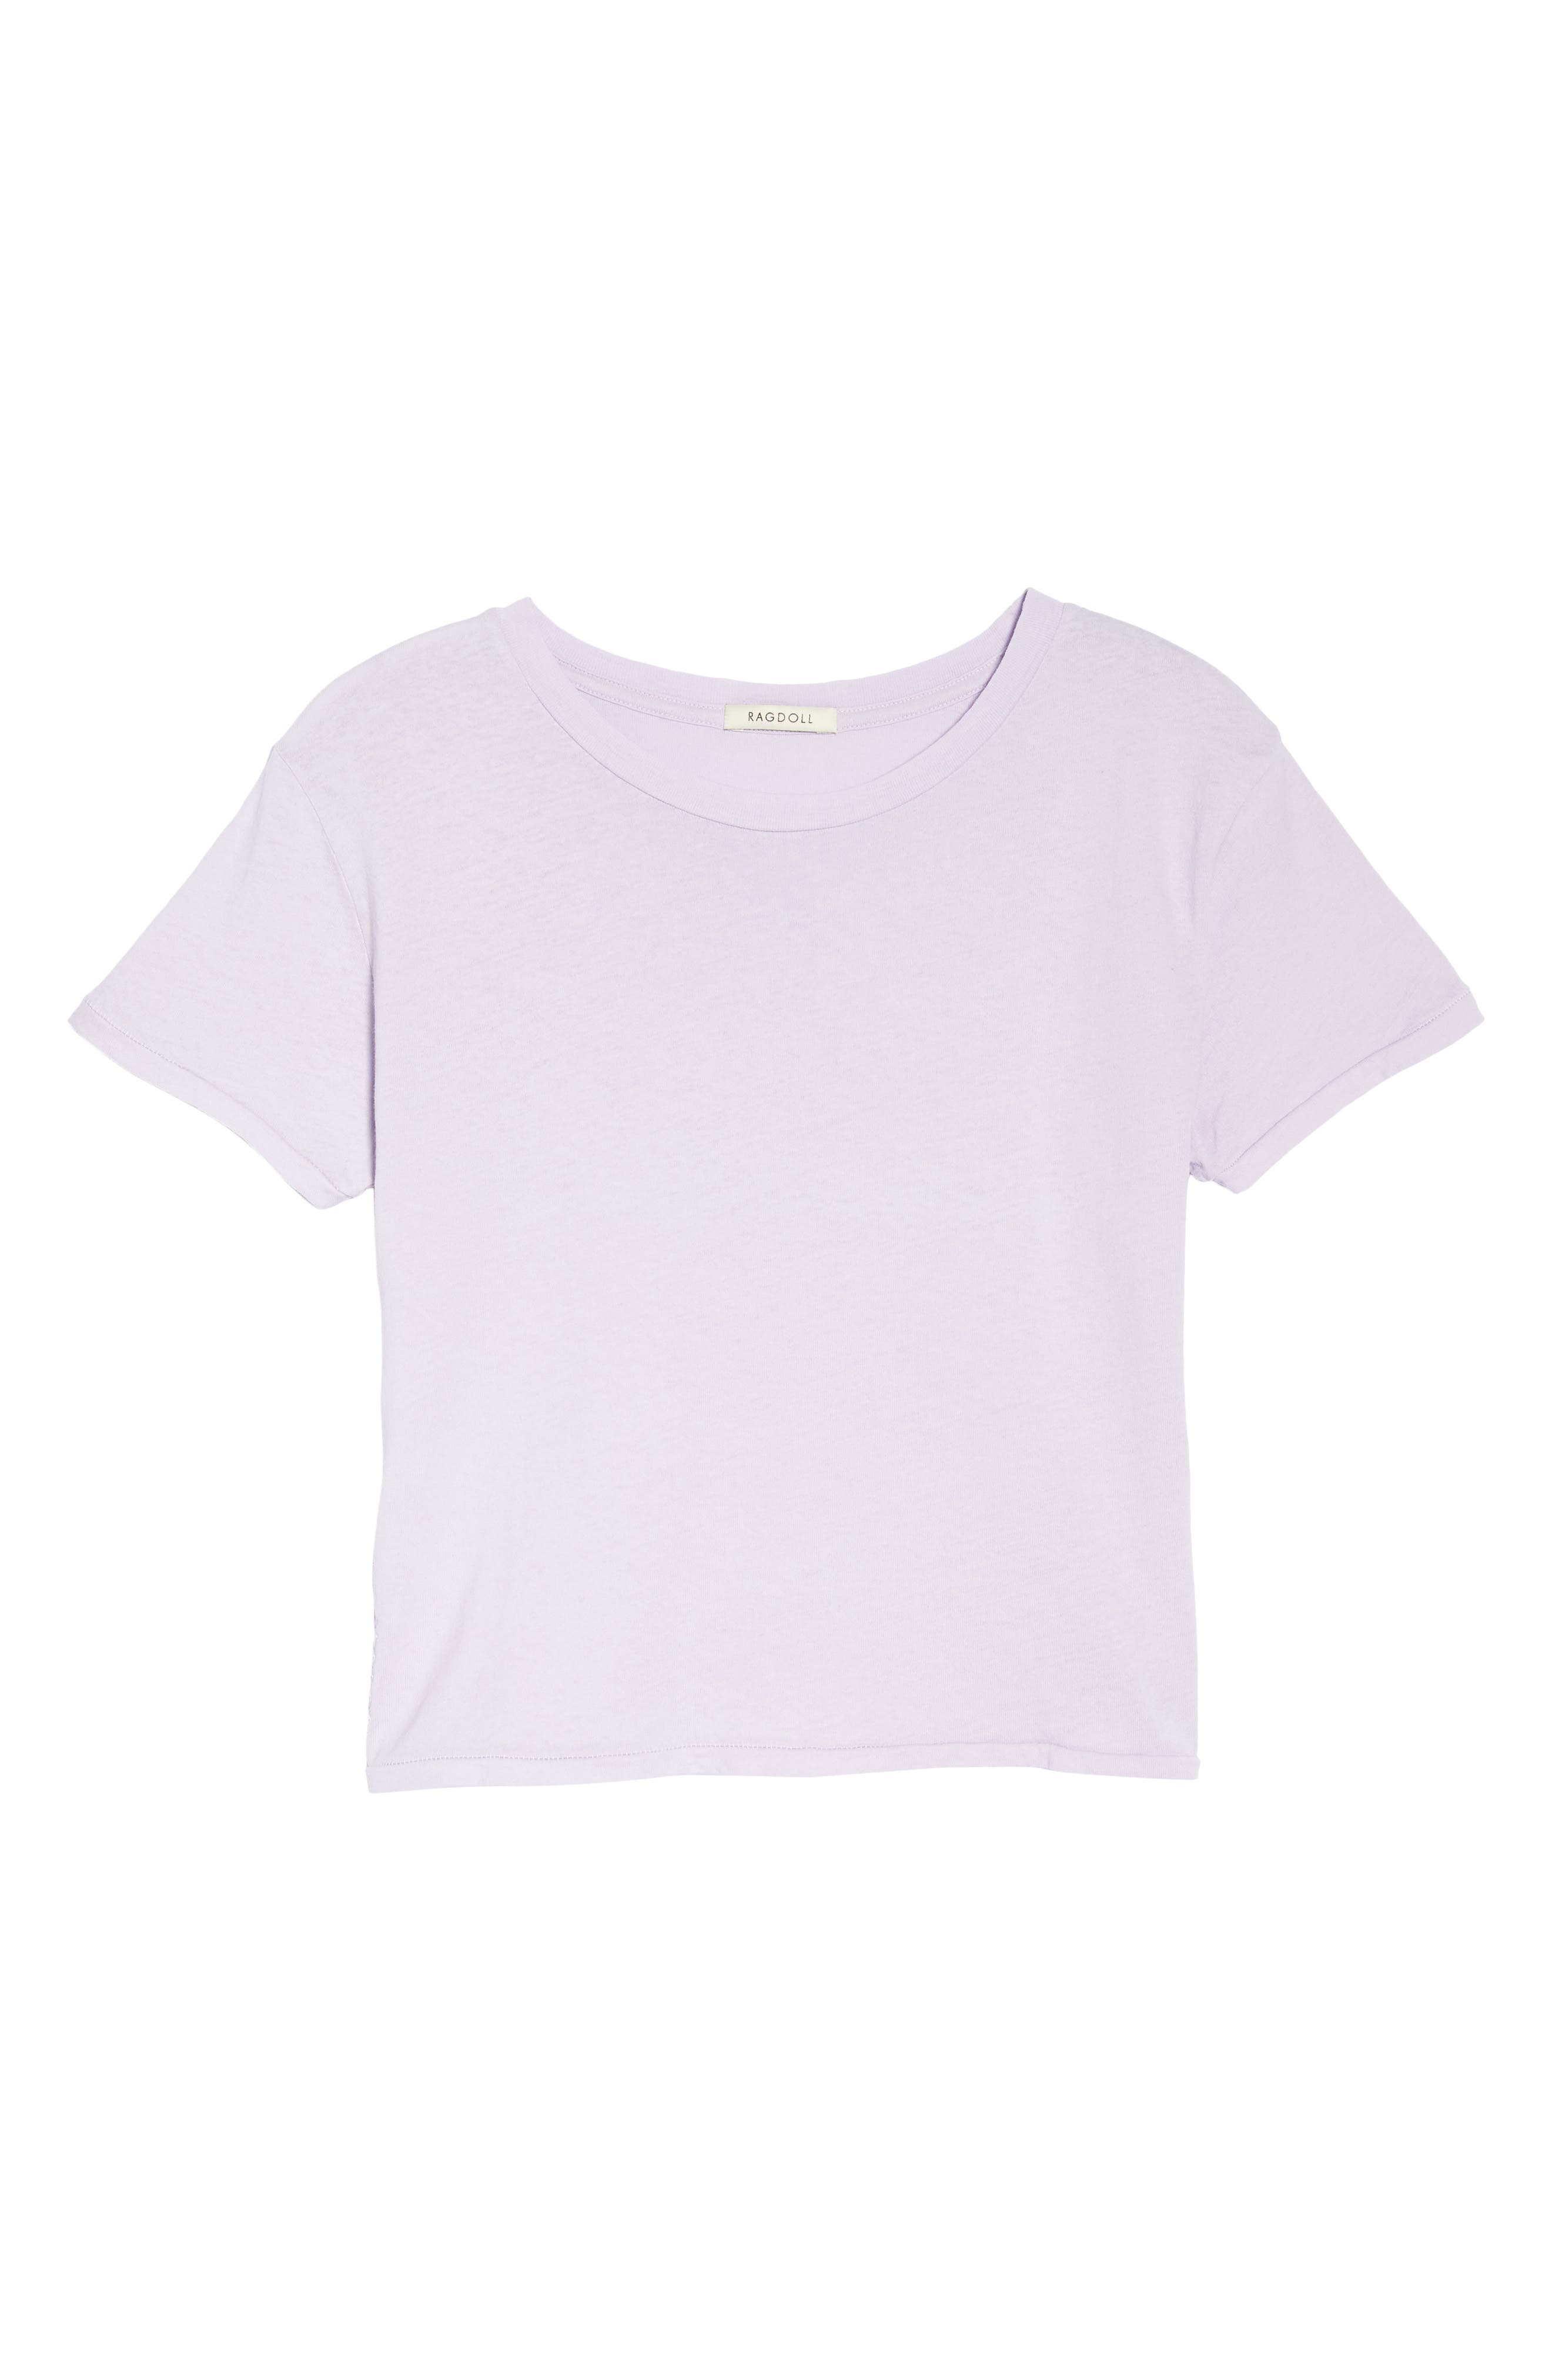 Crop Tee,                             Alternate thumbnail 6, color,                             LILAC